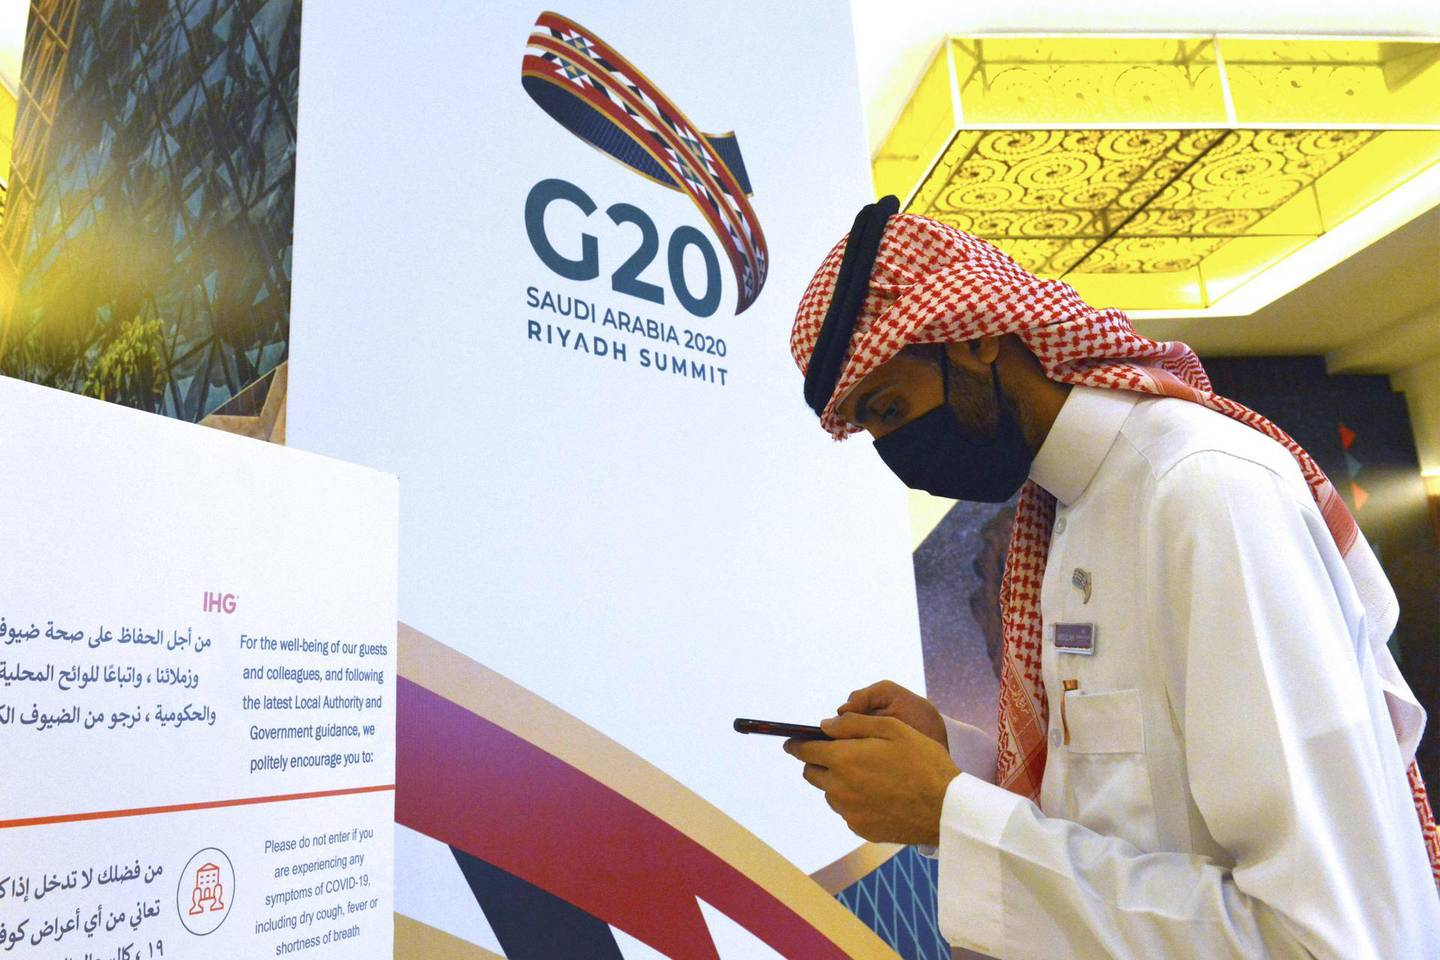 A Saudi man is pictured checks his phone as preparations take place ahead of a meeting of Finance ministers and central bank governors of the G20 nations in the Saudi capital Riyadh on November 18, 2020.  Saudi Arabia hosts the G20 summit Saturday in a first for an Arab nation, but the scaled-down virtual format could limit debate on a resurgent coronavirus pandemic and crippling economic crisis. / AFP / FAYEZ NURELDINE